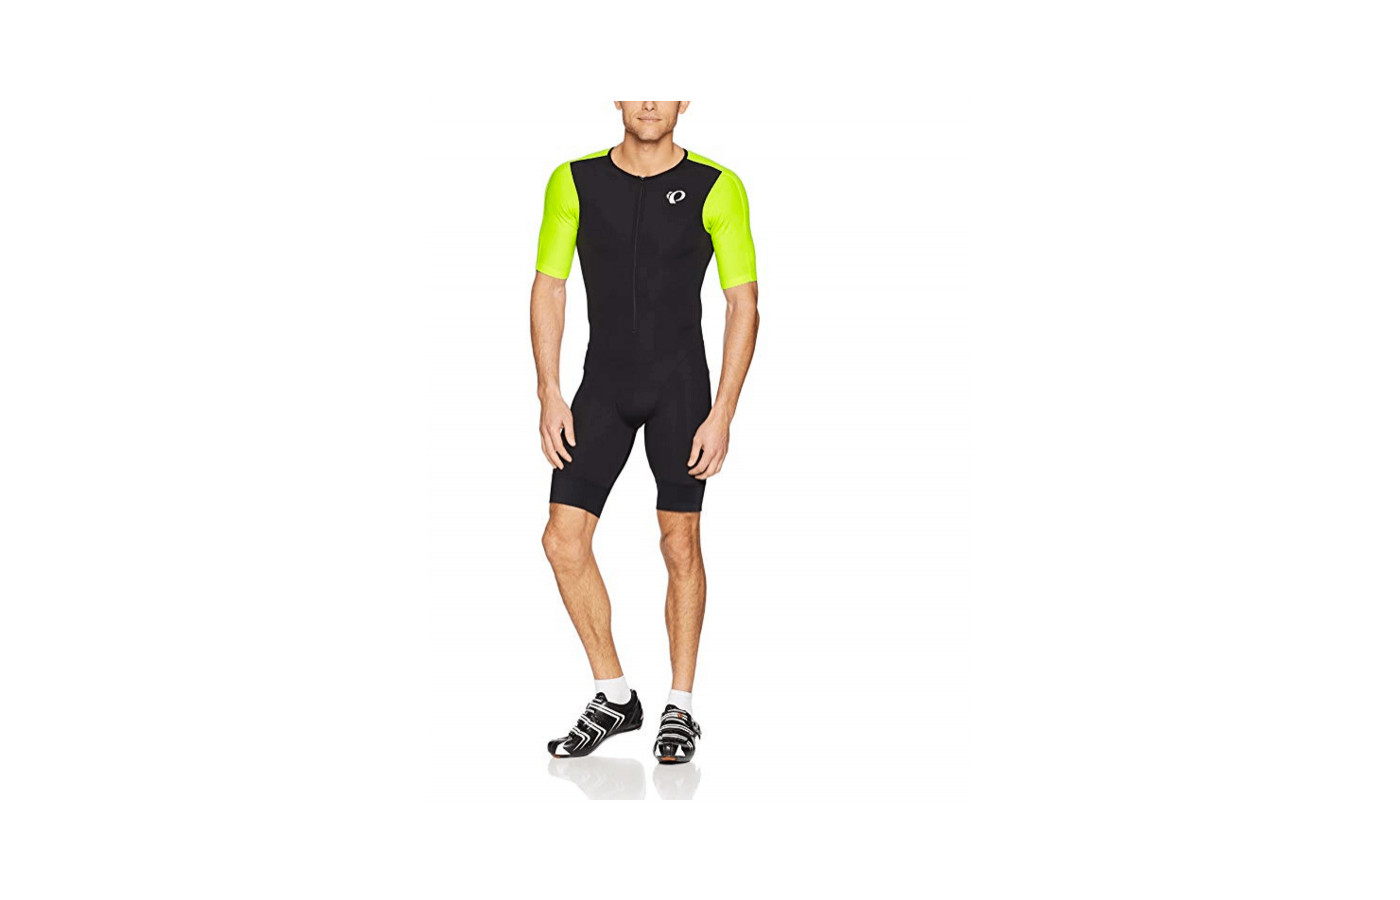 The Elite Tri Speed Suit includes coldblack technology to block UV rays